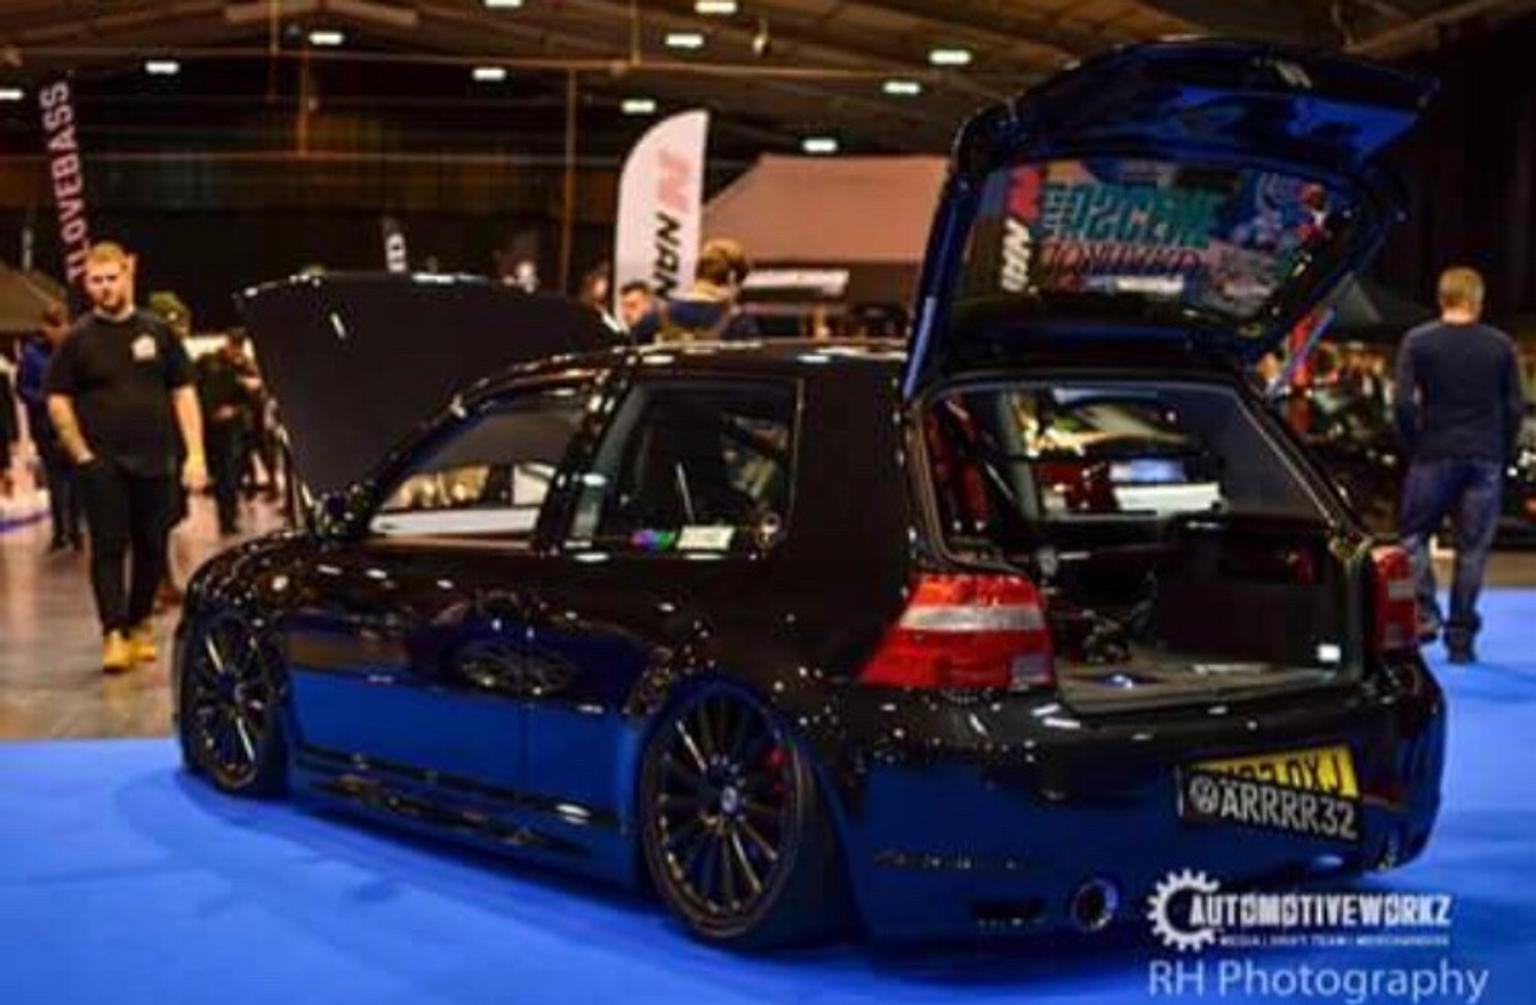 Vw Golf Mk4 R32 In Le10 Hinckley For 6 900 00 For Sale Shpock